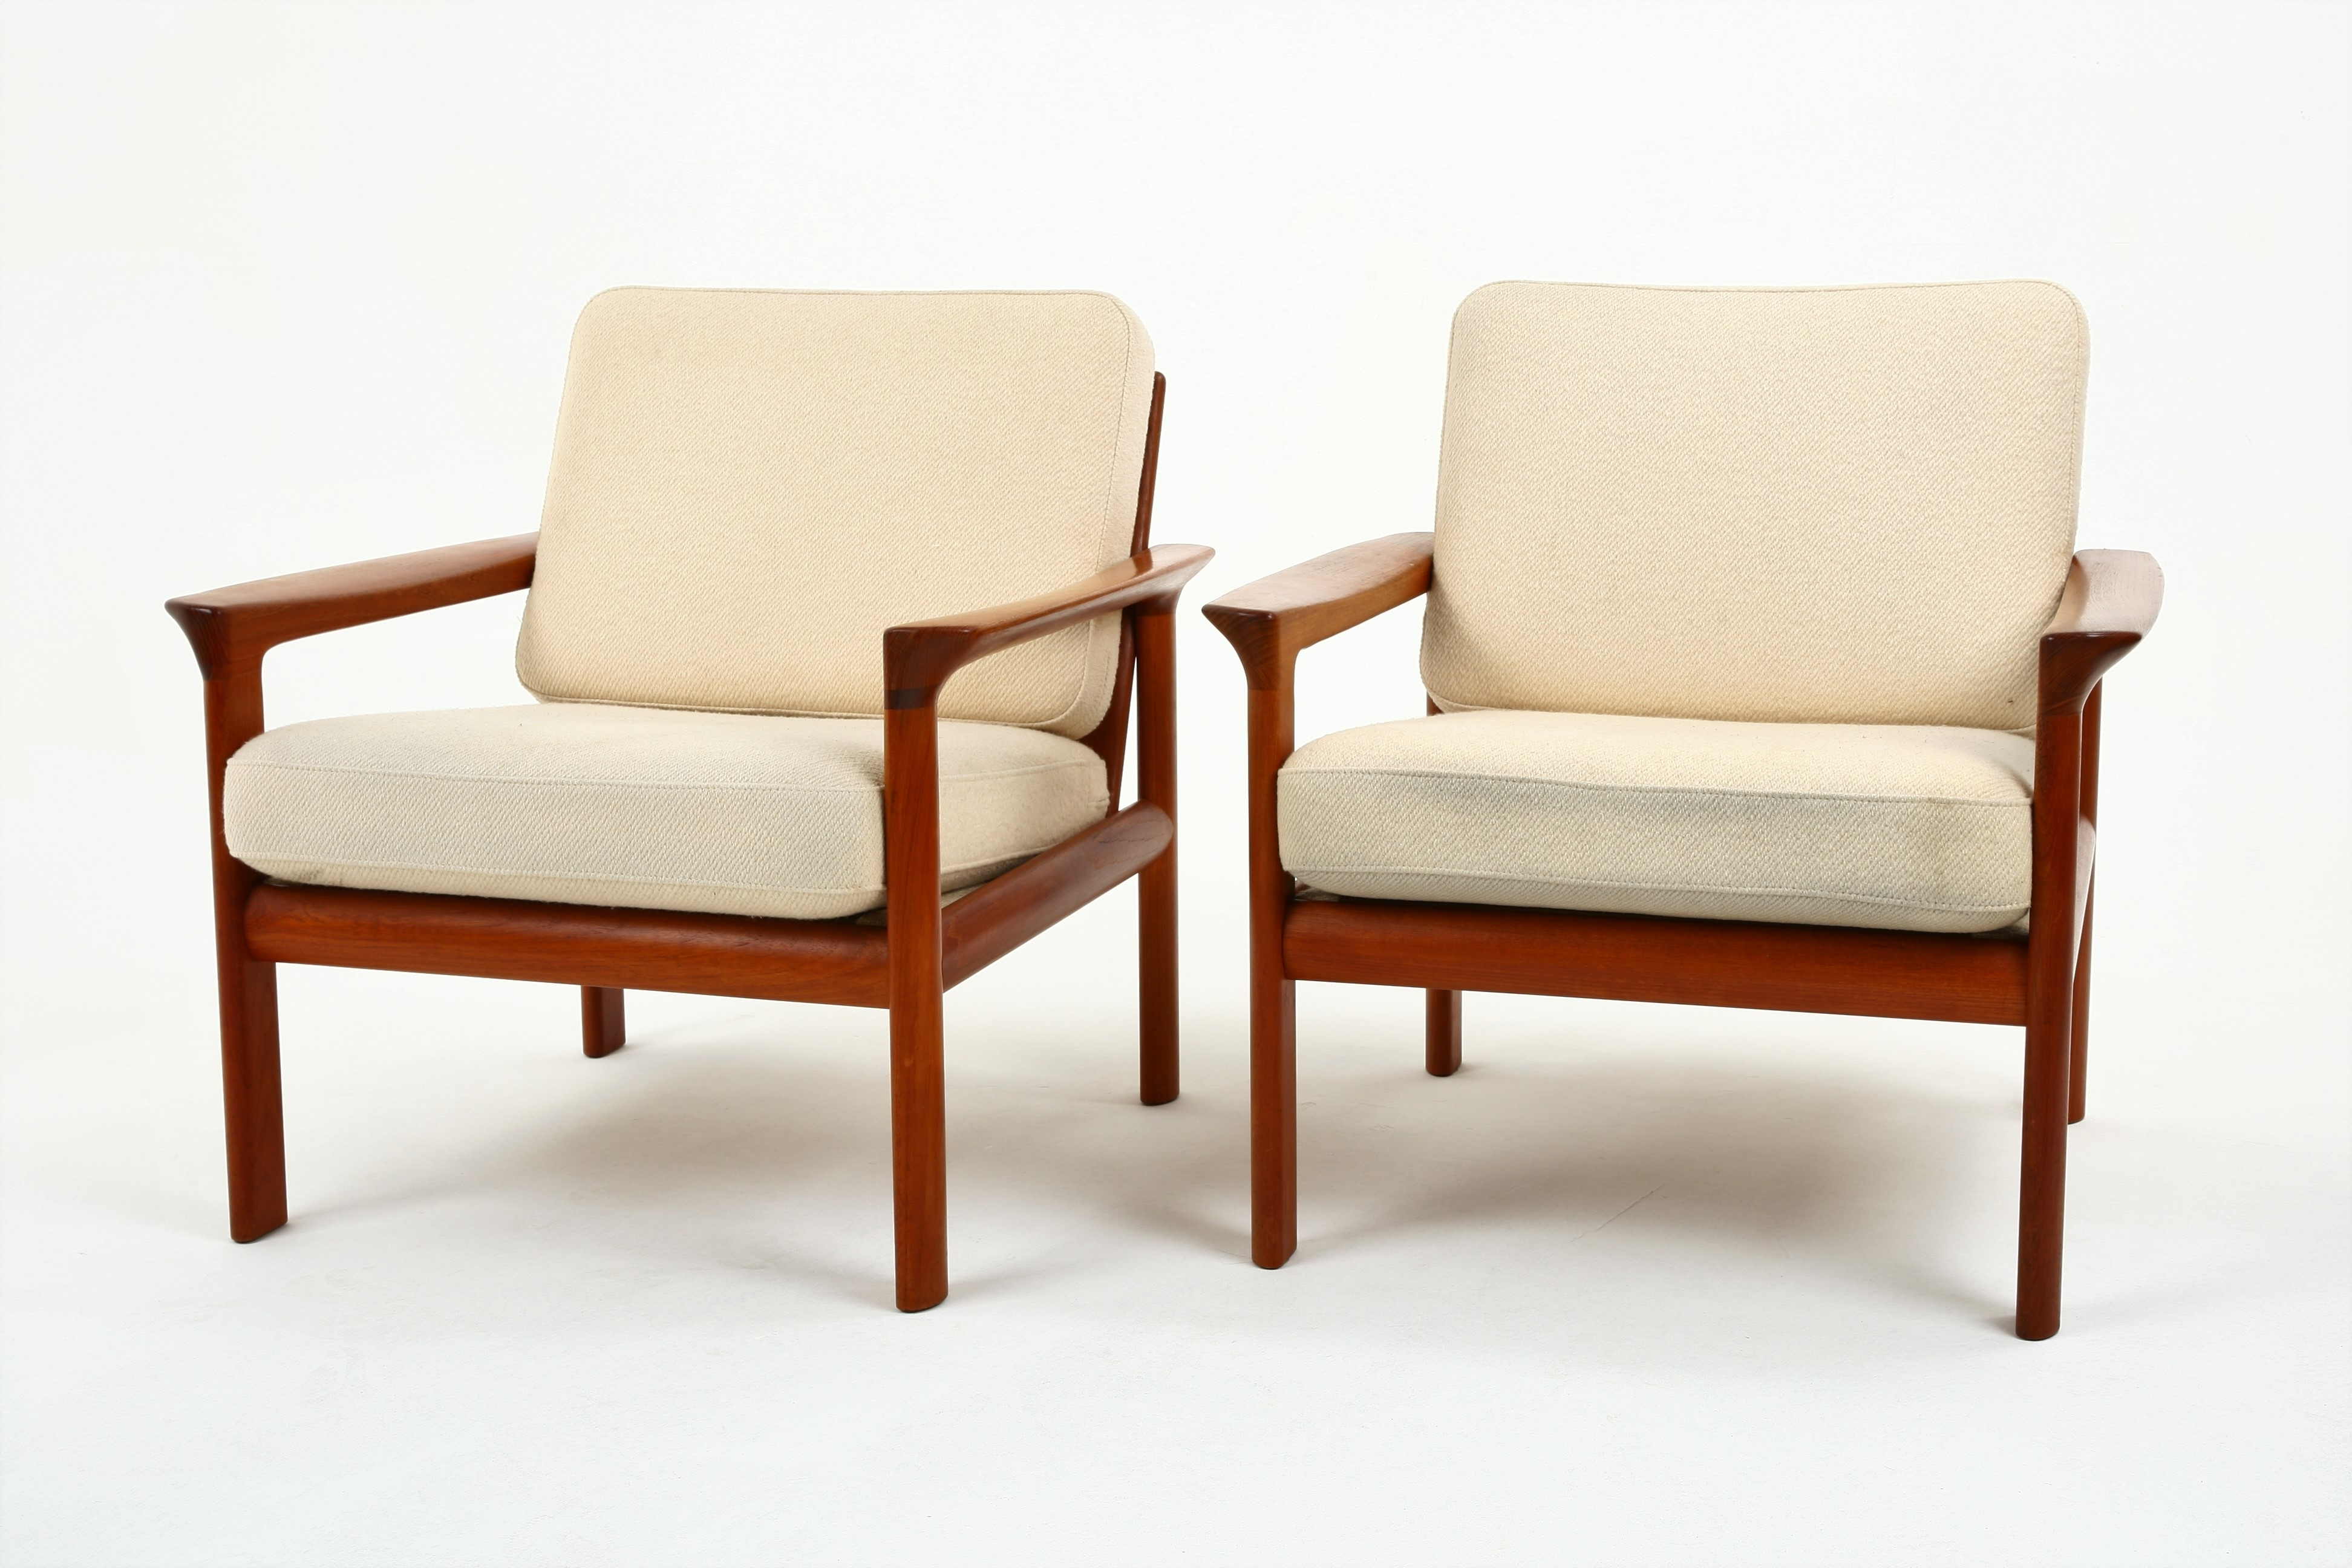 High Quality Chaise Lounge Chairs Throughout Favorite Convertible Chair : Outdoor Chaise Lounge Teak Wood Patio Set Teak (View 5 of 15)